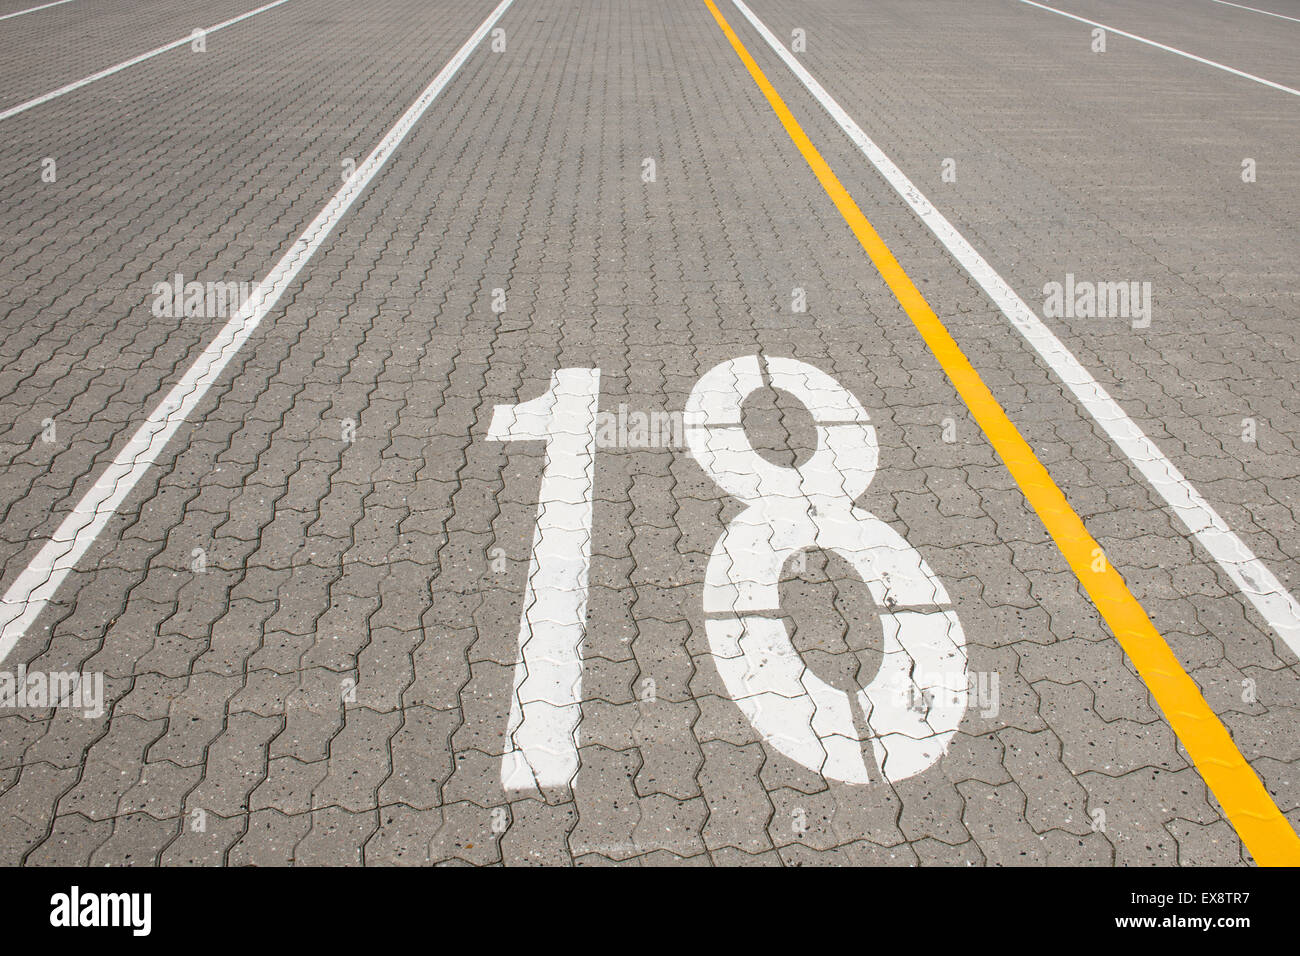 Ferry lane number 18 painted white on paving stone Stock Photo